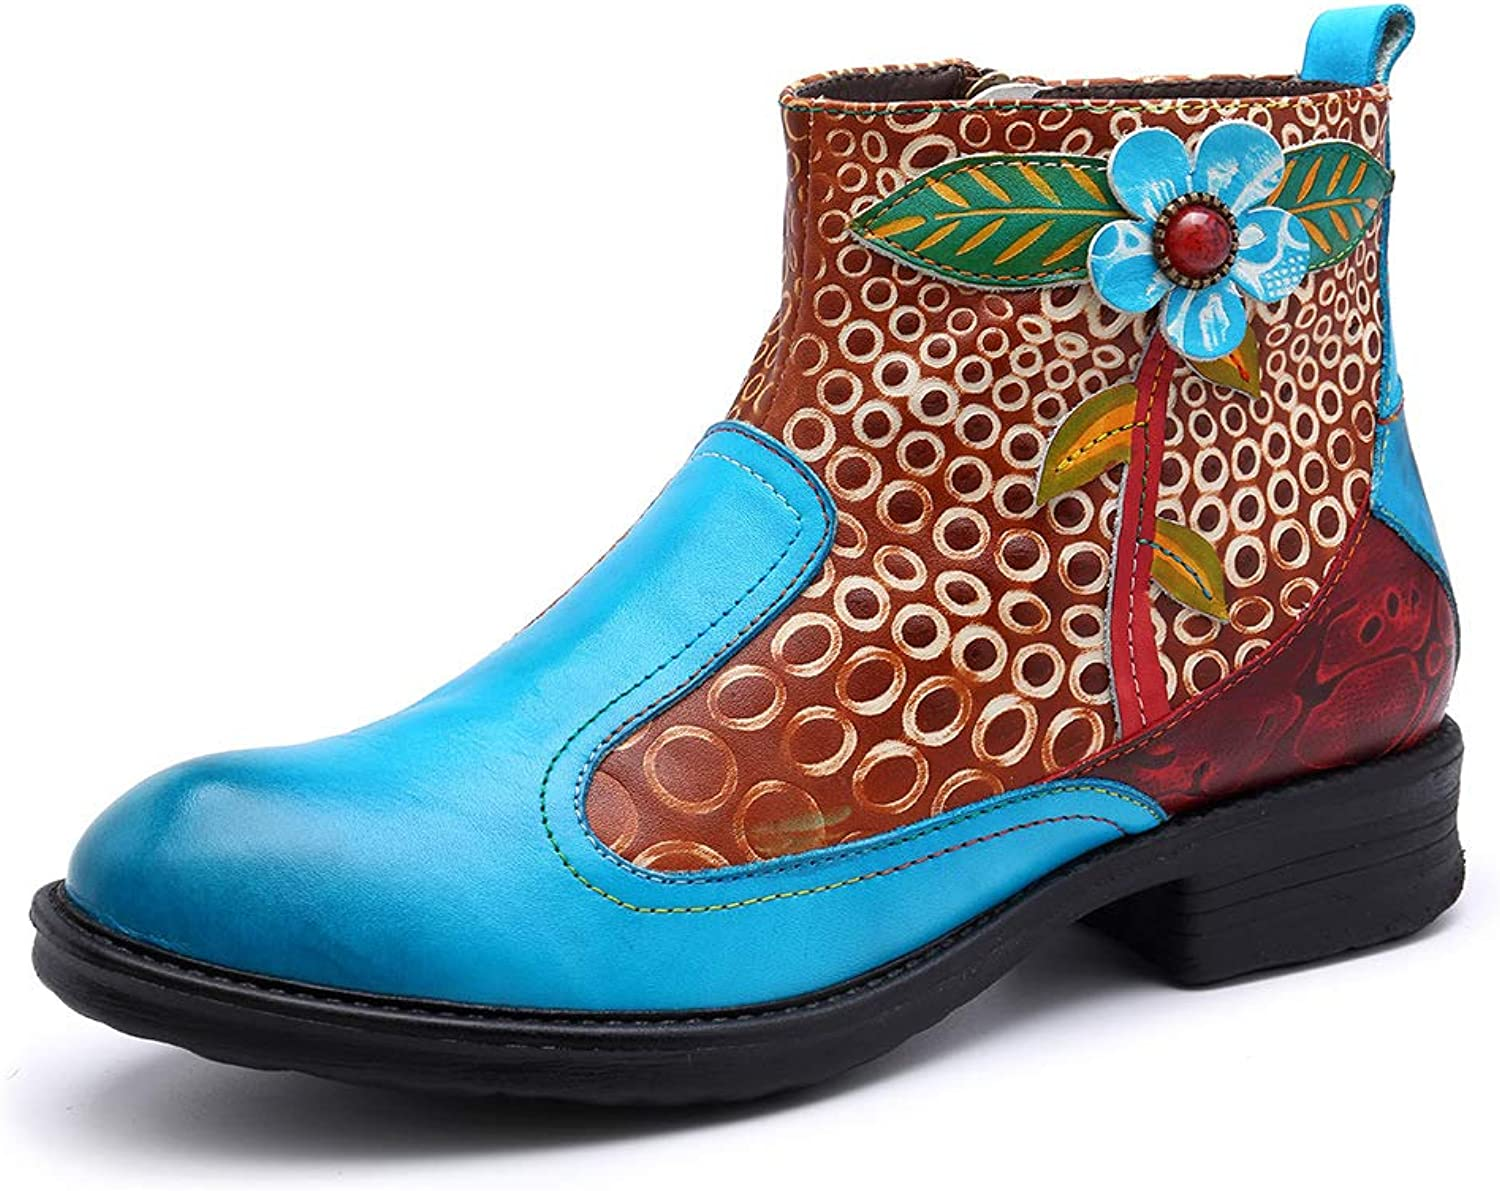 Women's bluee Ankle Boots, Casual Leather Zip Oxford Boots Classic National Style Bohemian Pattern Boot